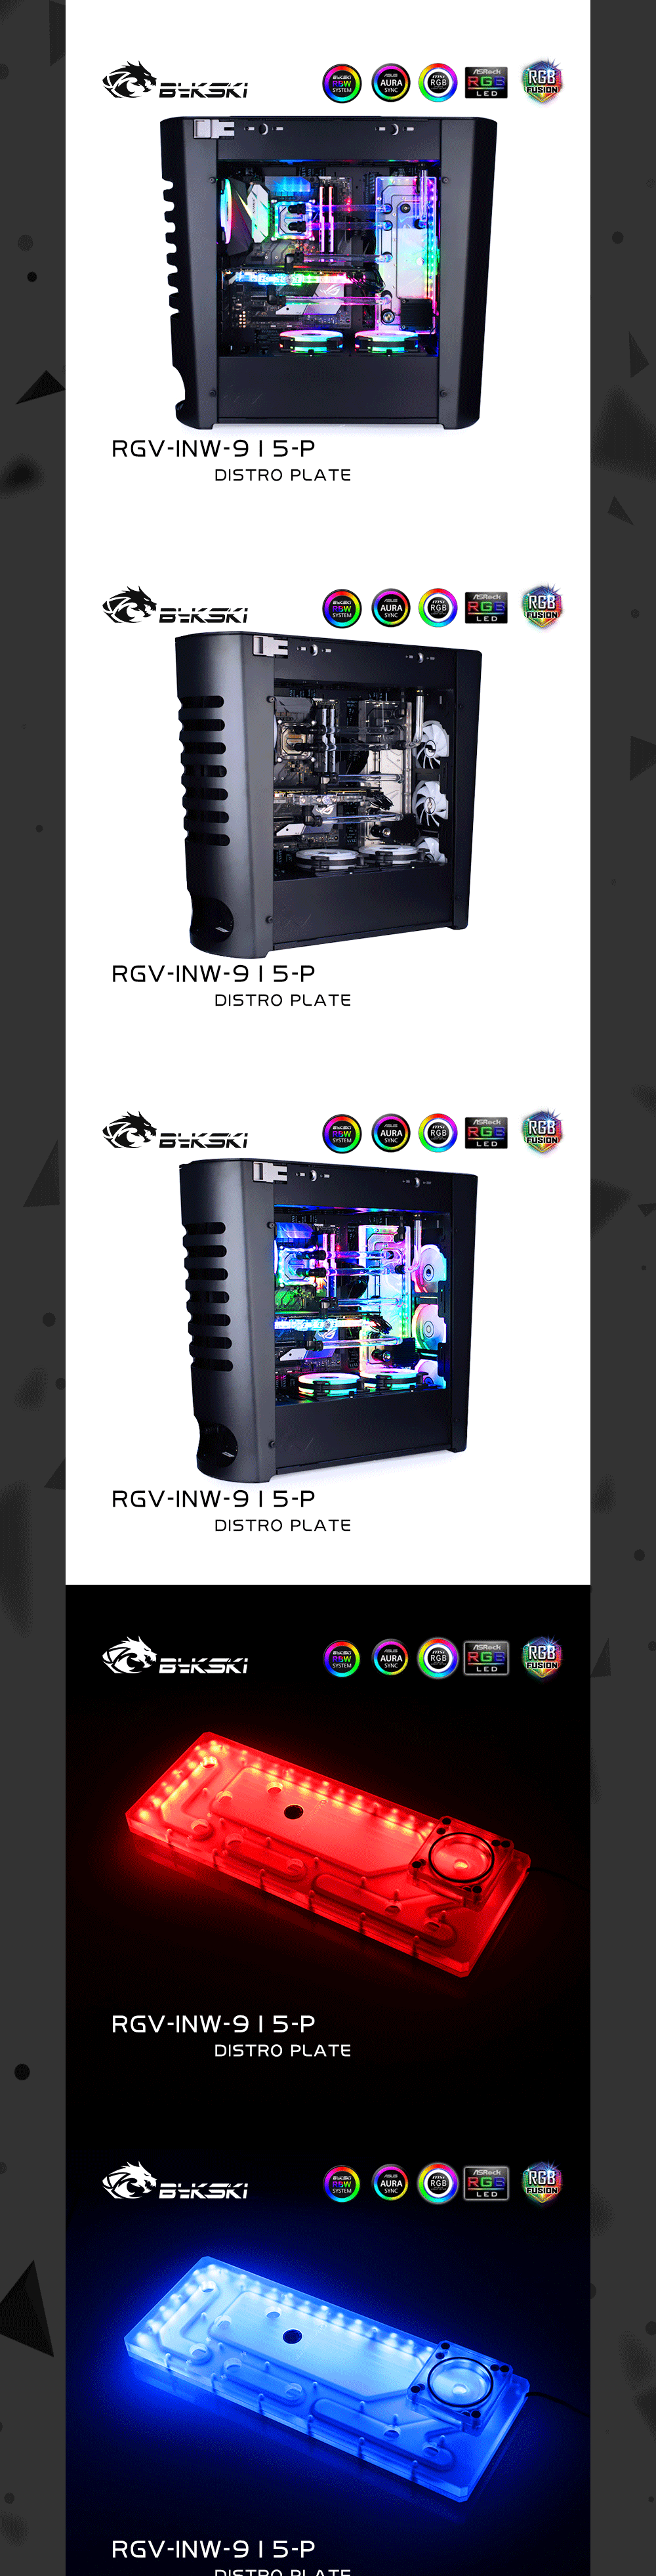 Bykski RGV-INW-915-P Waterway Board, Distro Plate For INWIN 915 Dynamic Chassis, Acrylic Water Tank Liquid cooling System